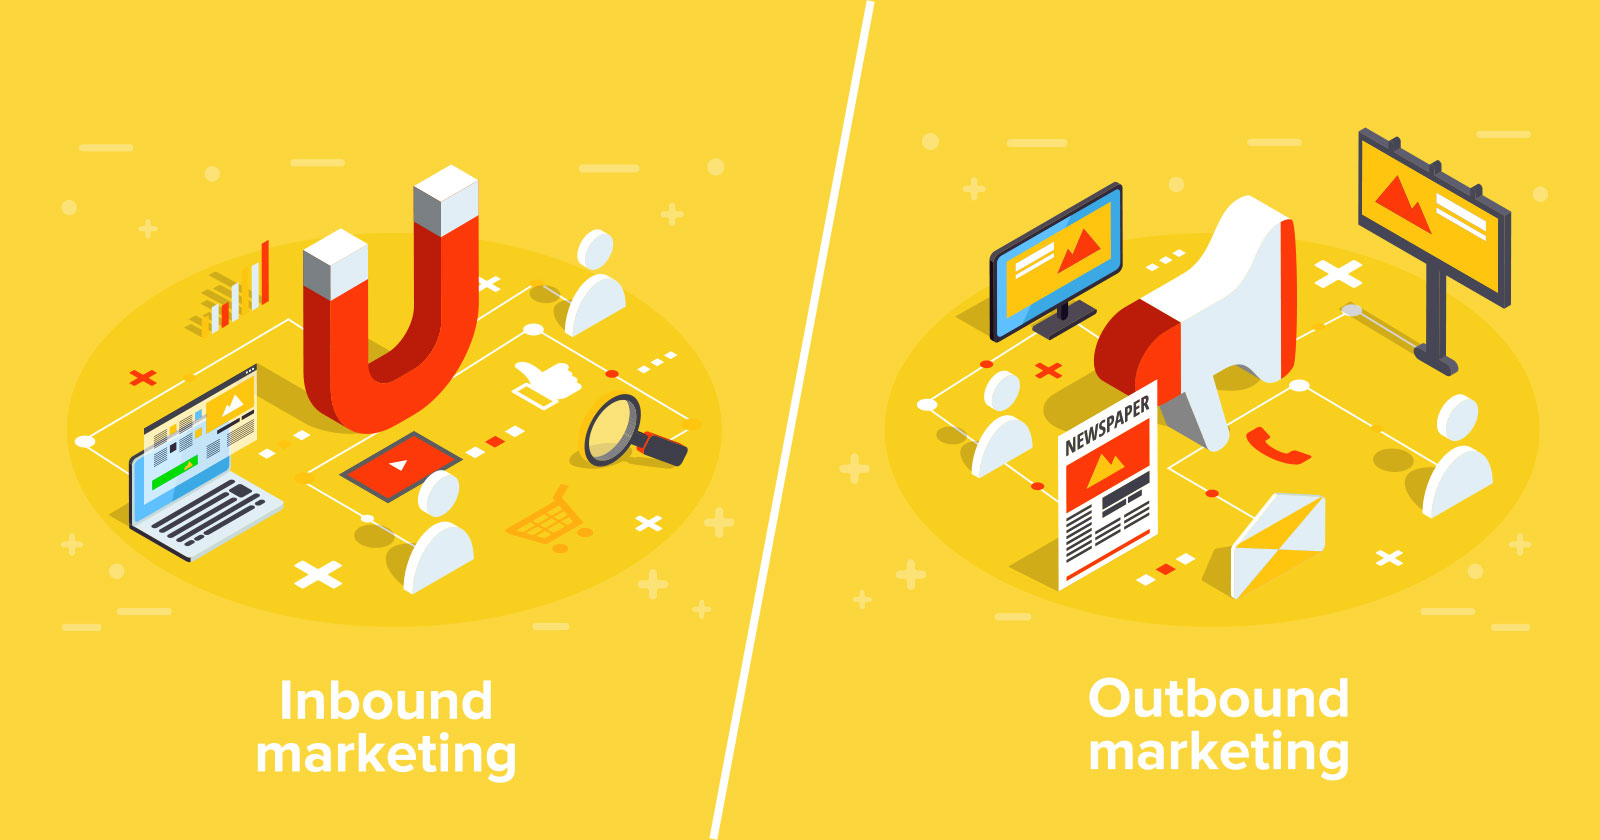 inbound-marketing vs outbound marketing infographic whitehat